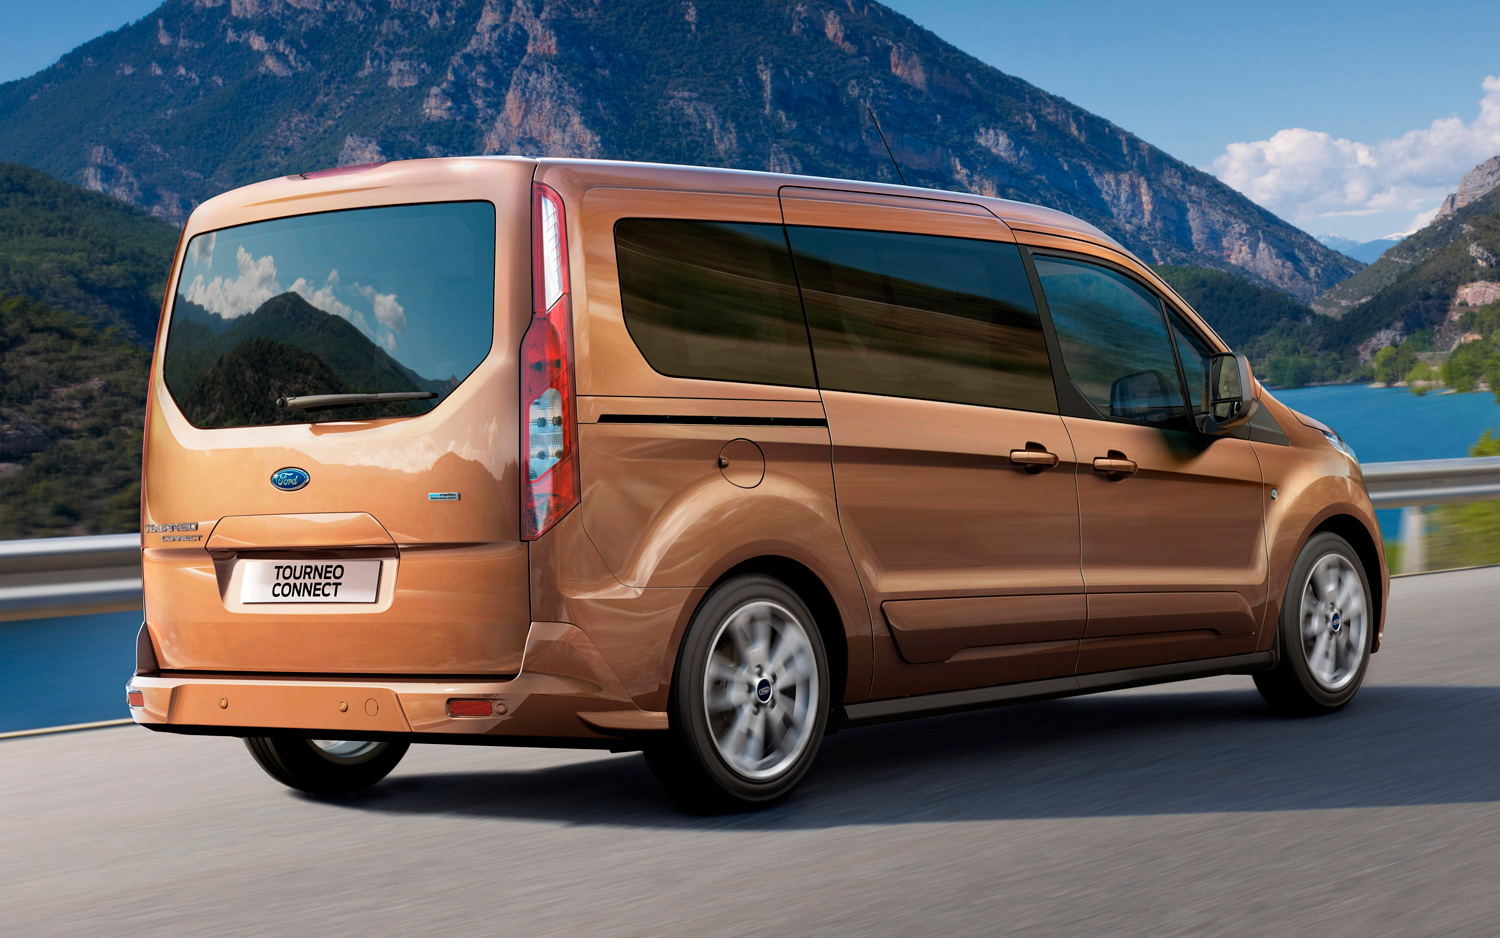 ford transit connect mazda5 though connect free download image